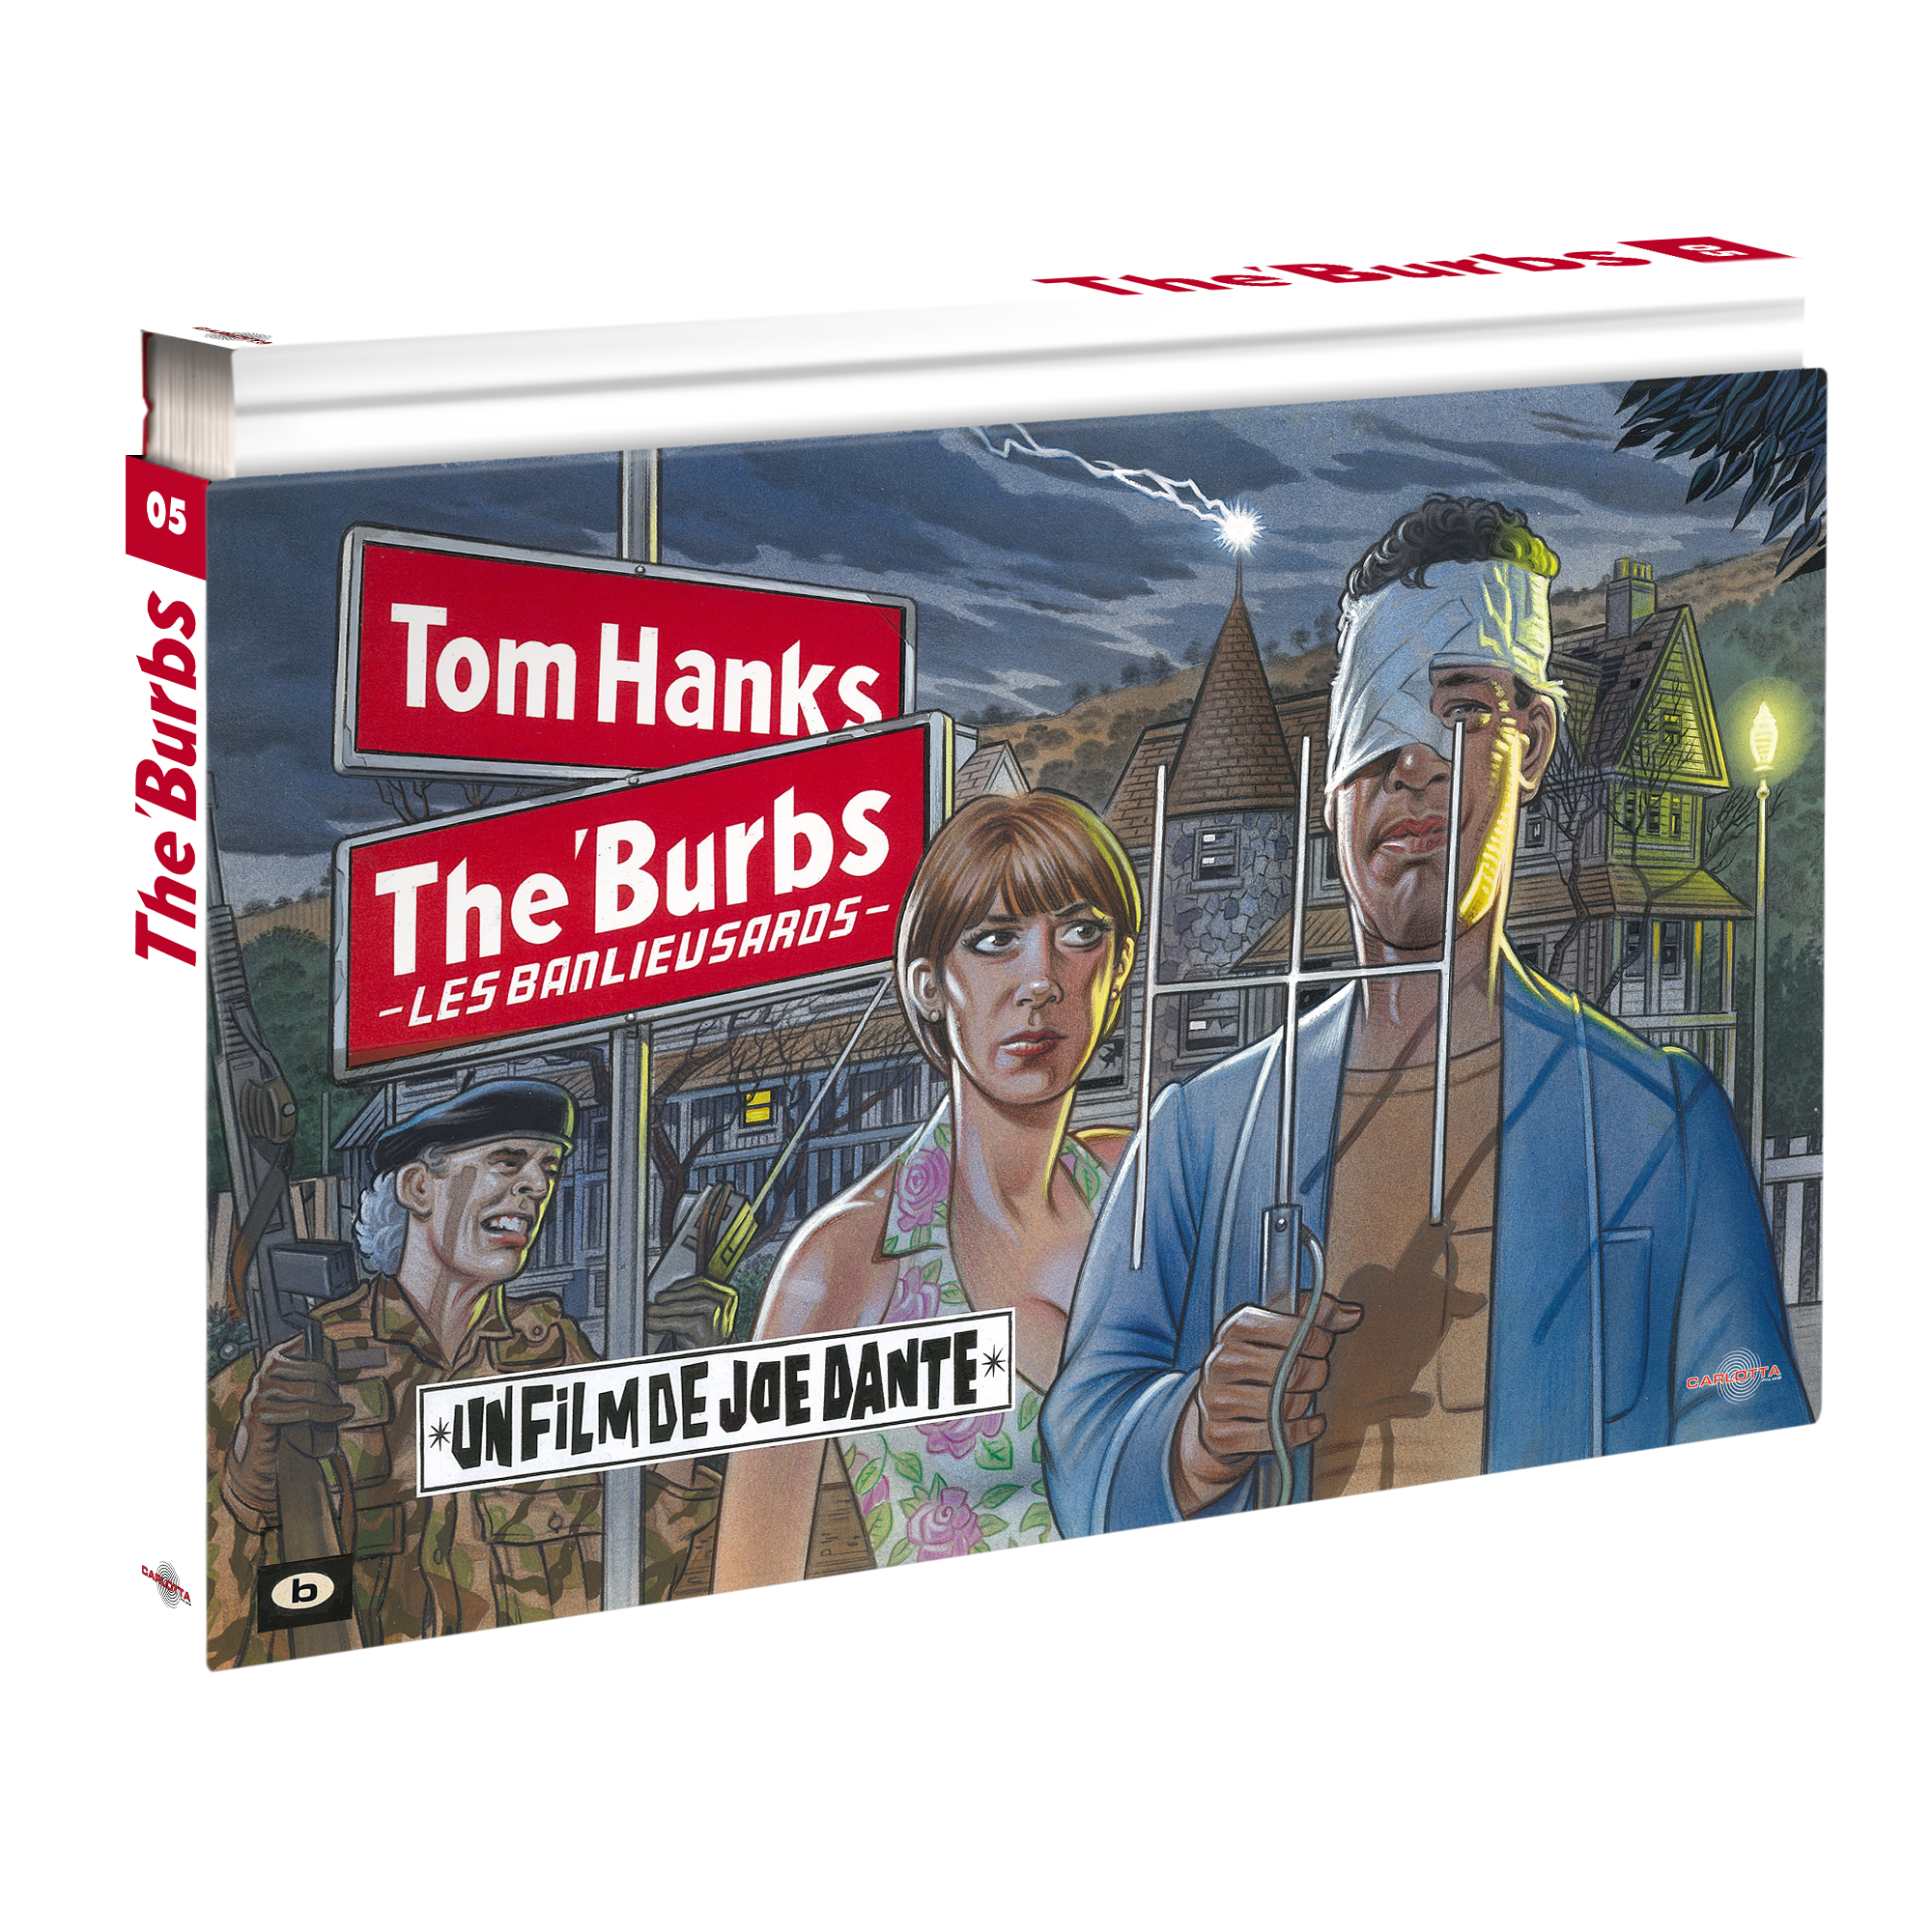 The 'Burbs - Coffret Ultra Collector 05 - Blu-ray + DVD + Livre - CARLOTTA FILMS - La Boutique